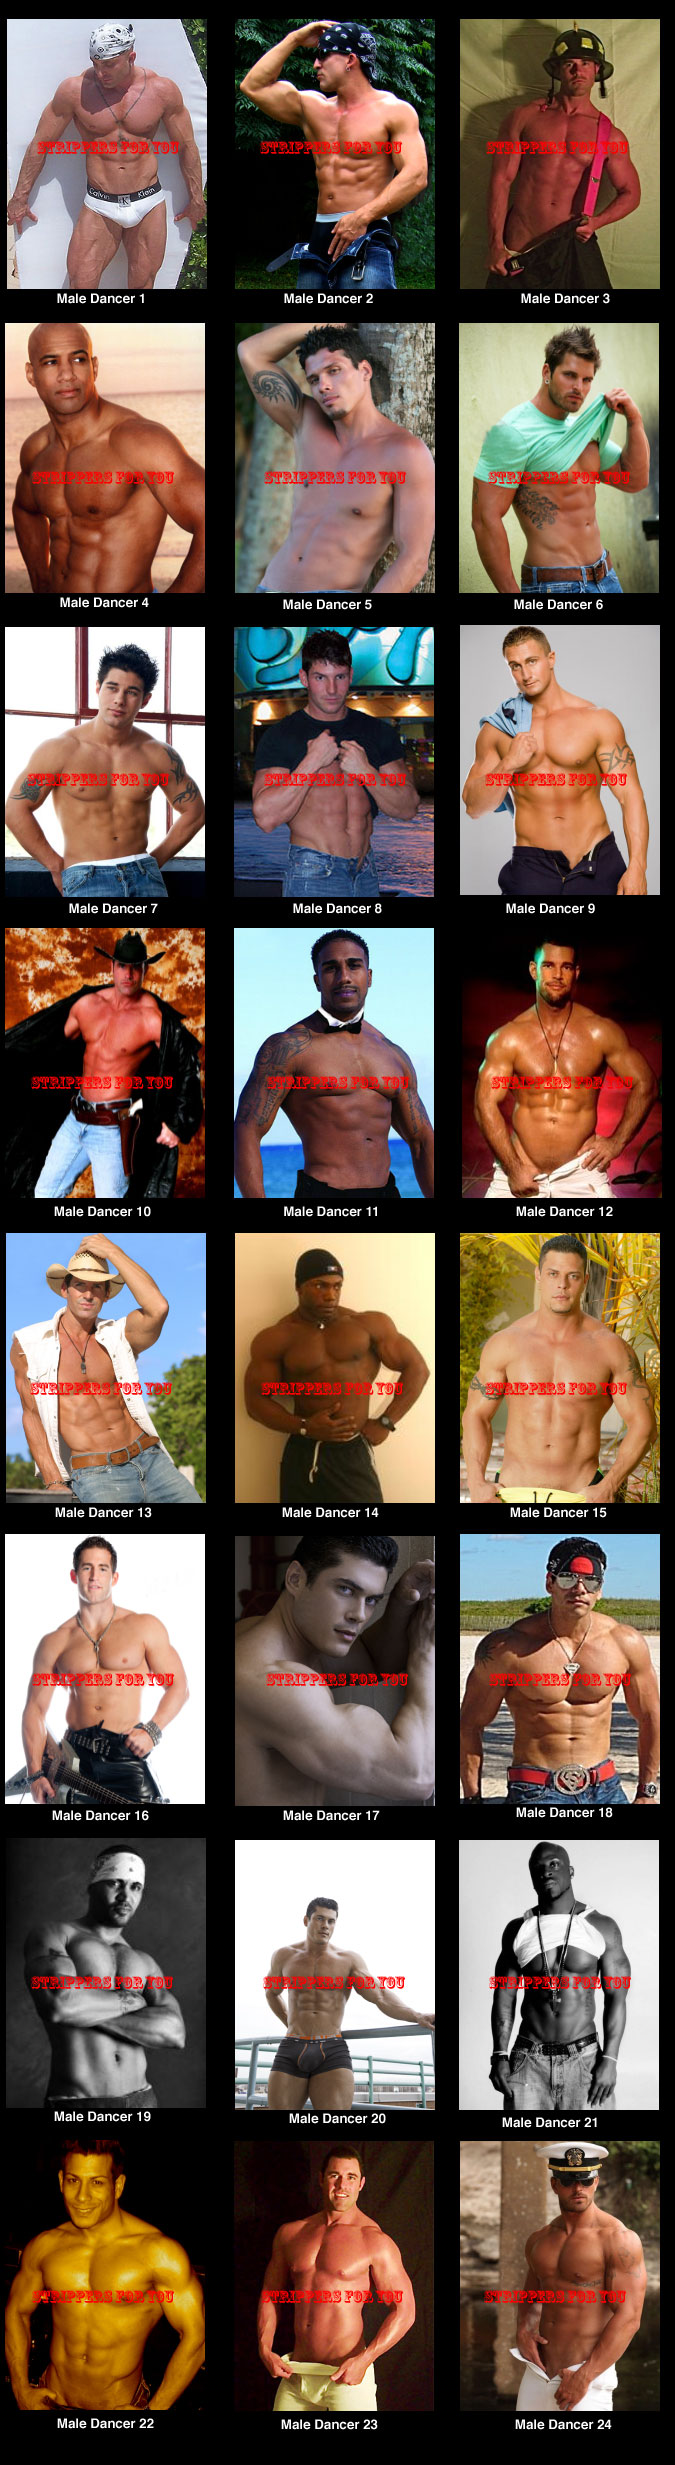 Tucson male strippers